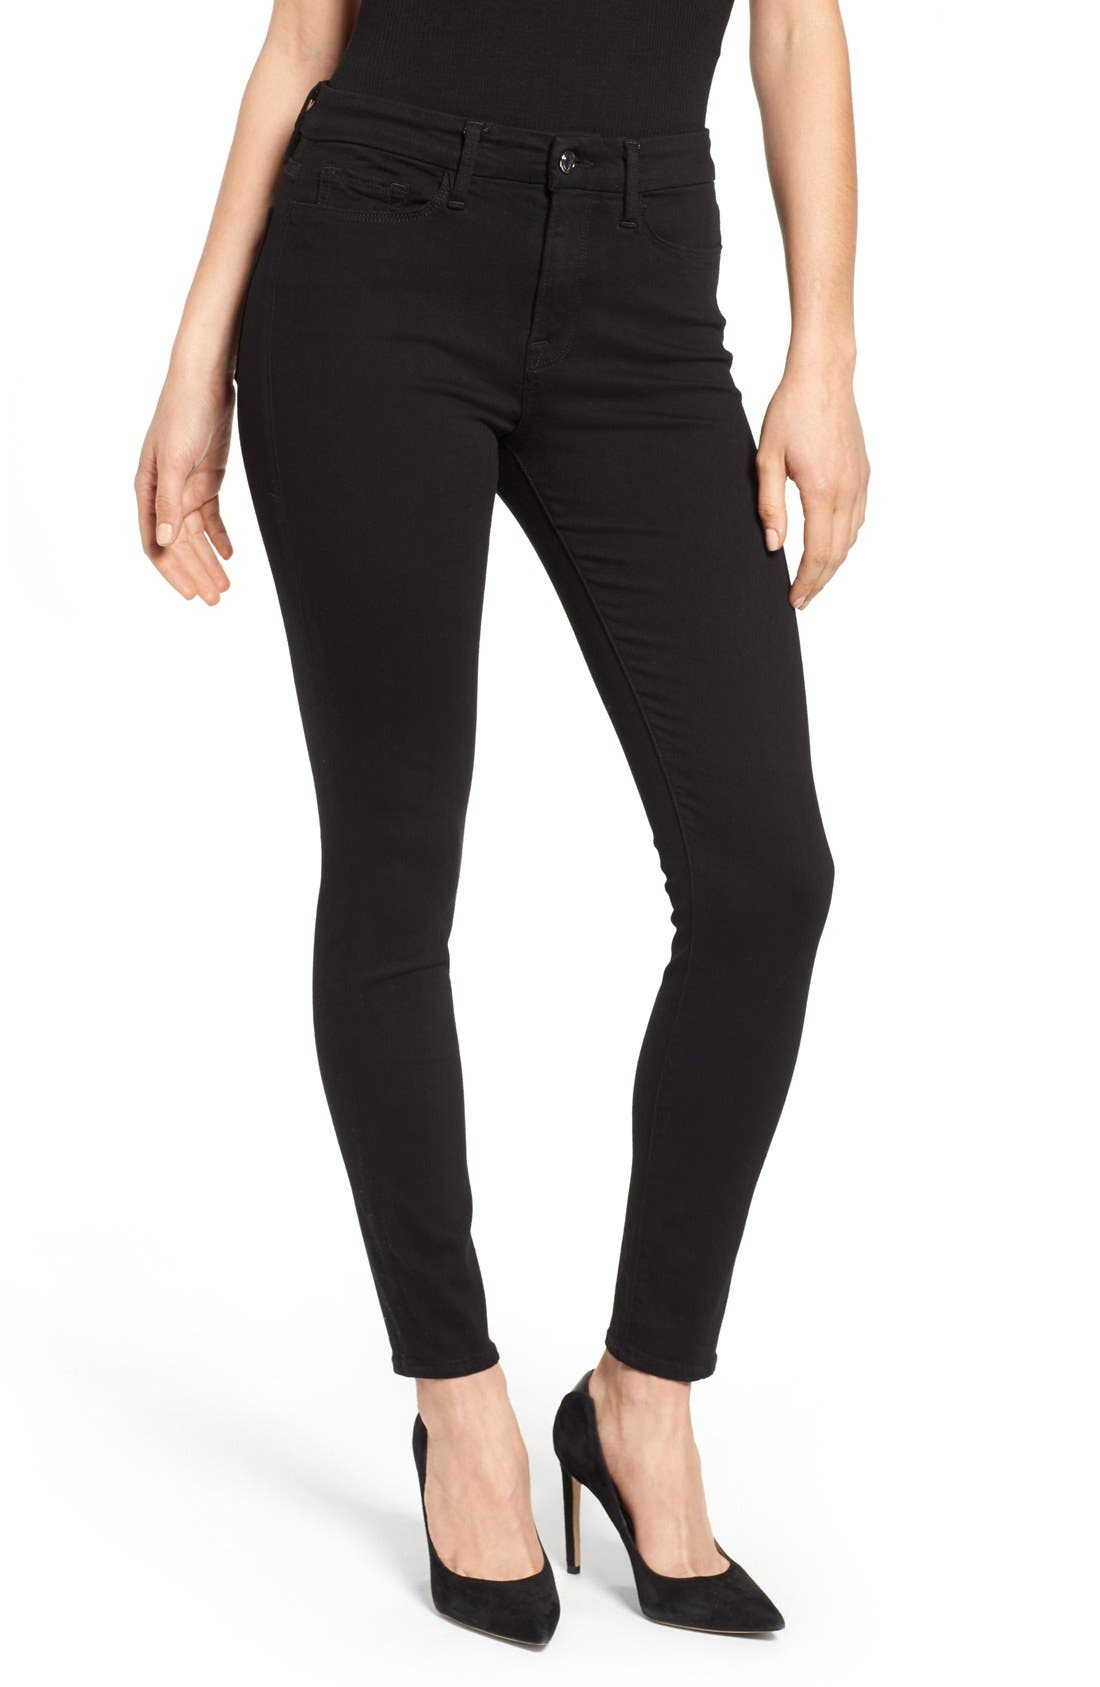 Alternate Image 1 Selected - Good American Good Legs High Rise Skinny Jeans (Black 001)